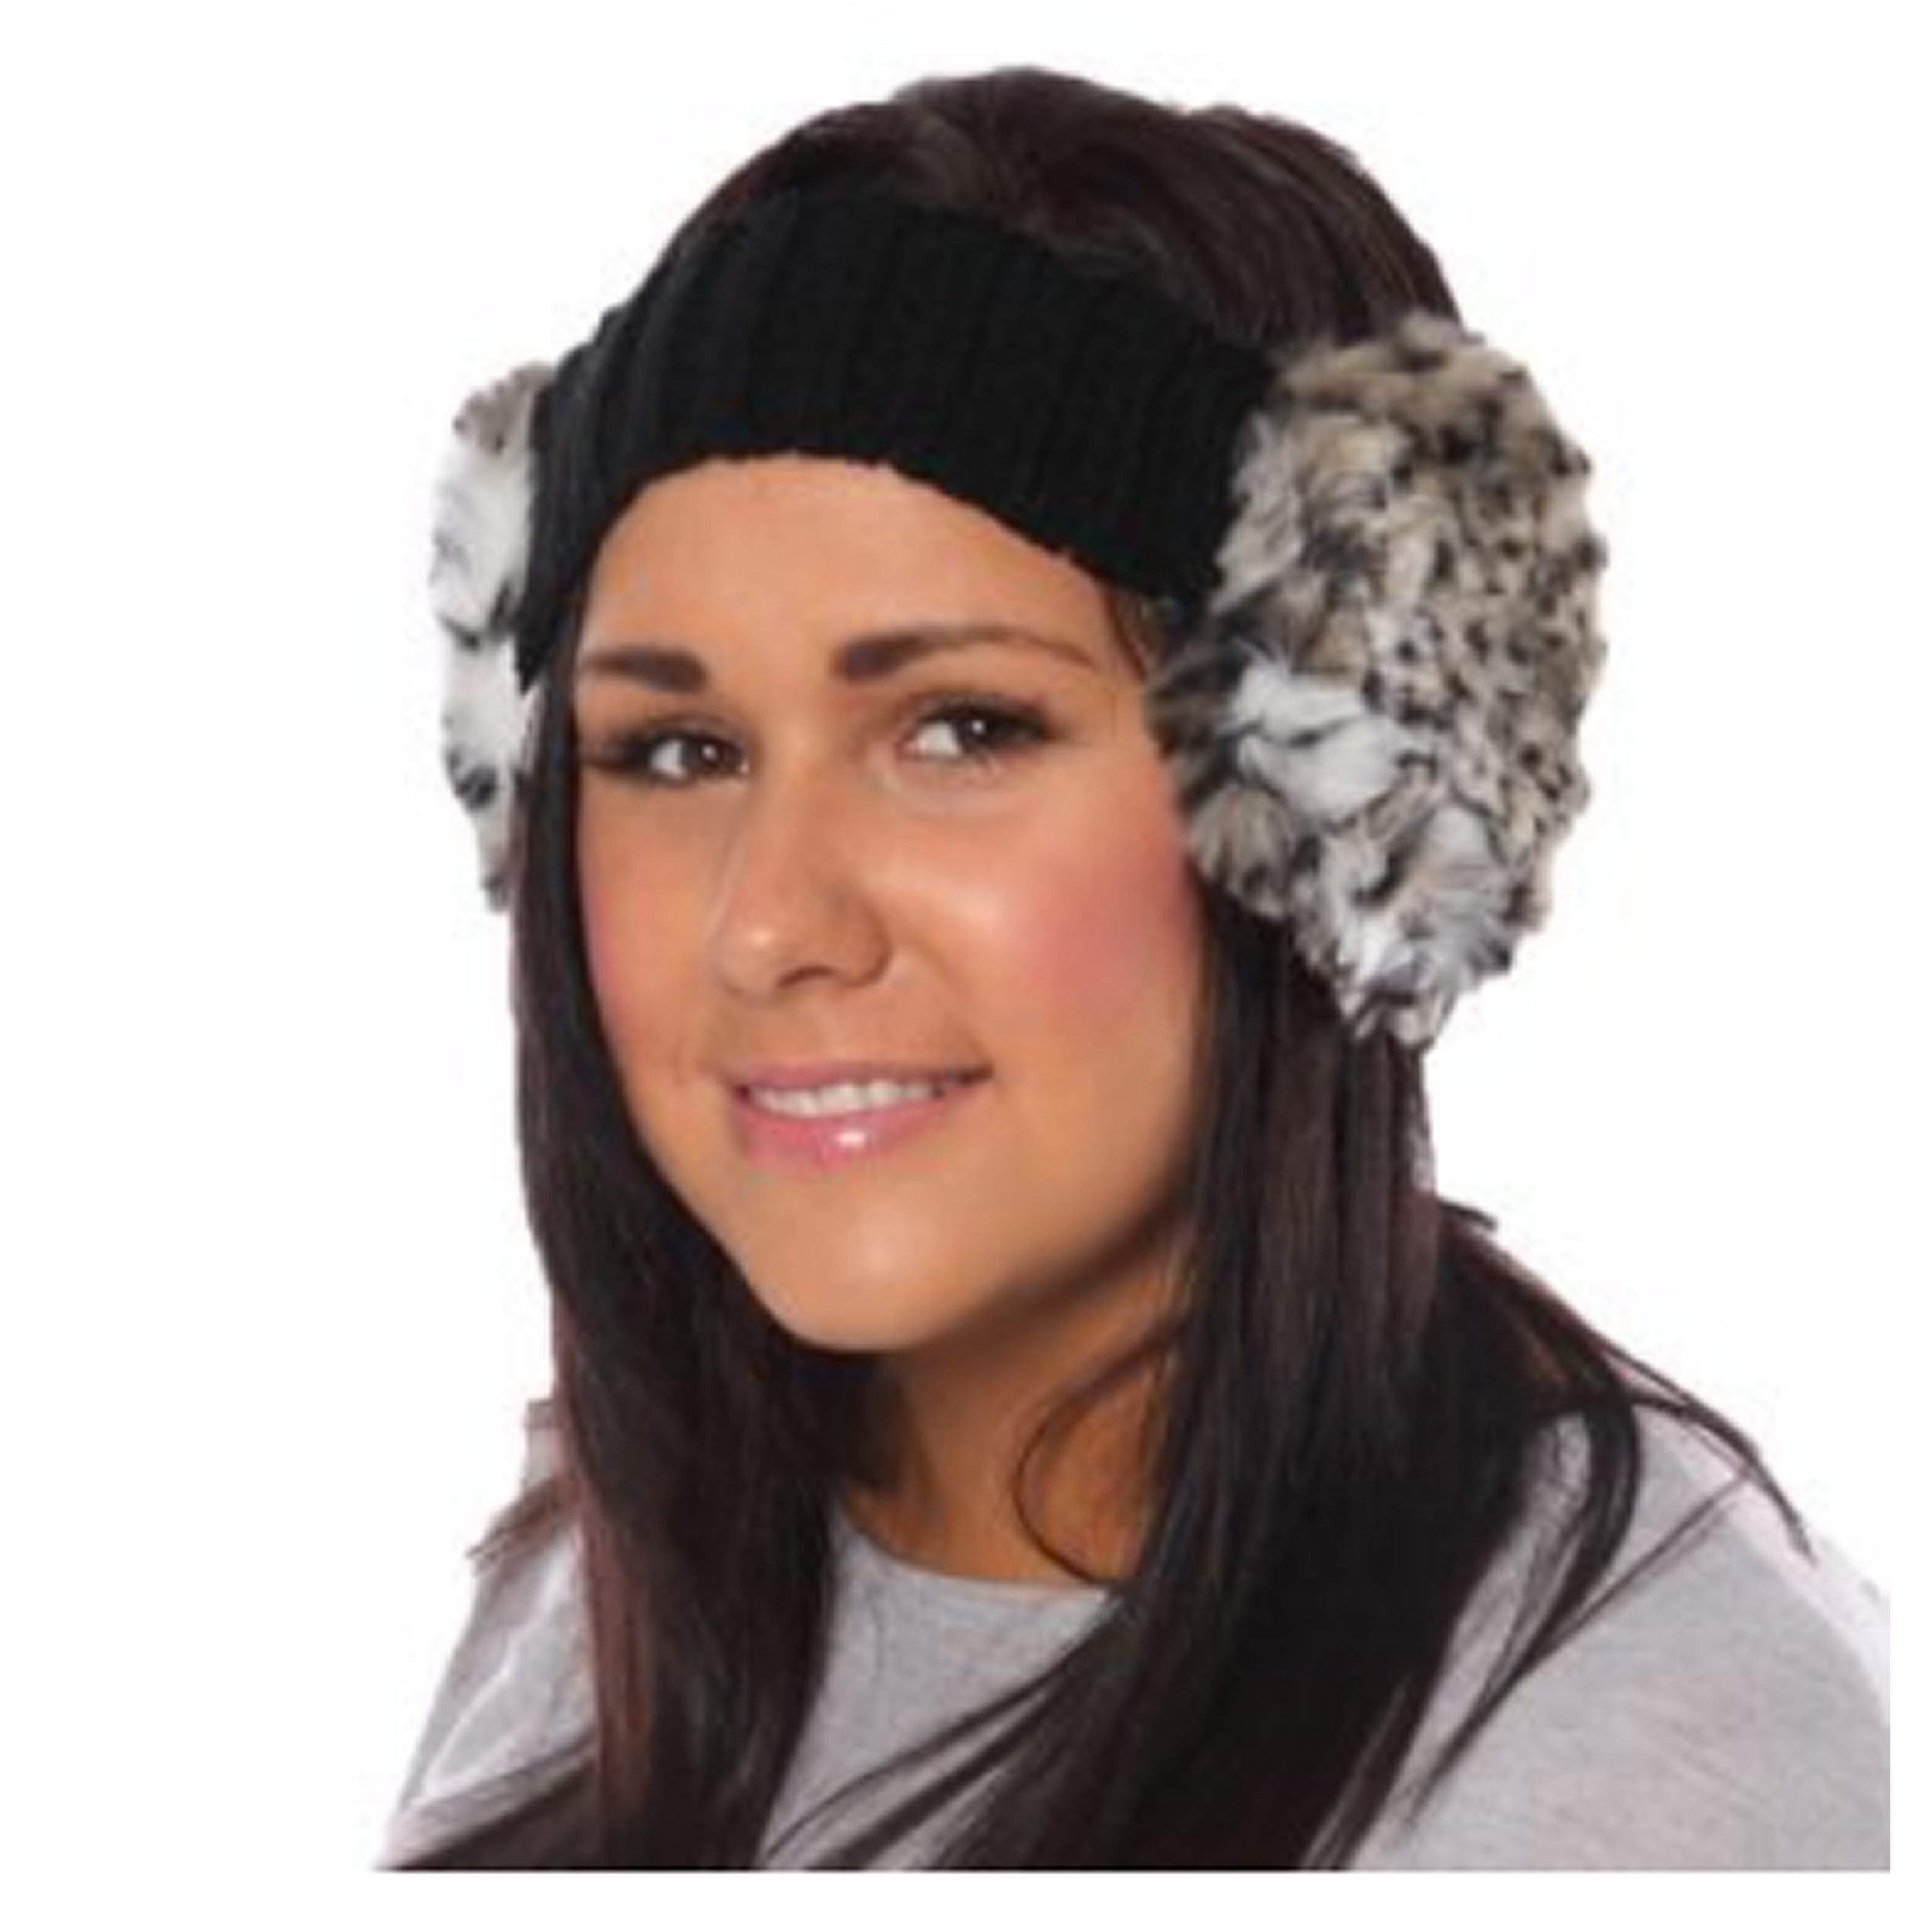 Knitted Earmuffs Headband Faux Fur Black Beige  63f3c4ef5e0